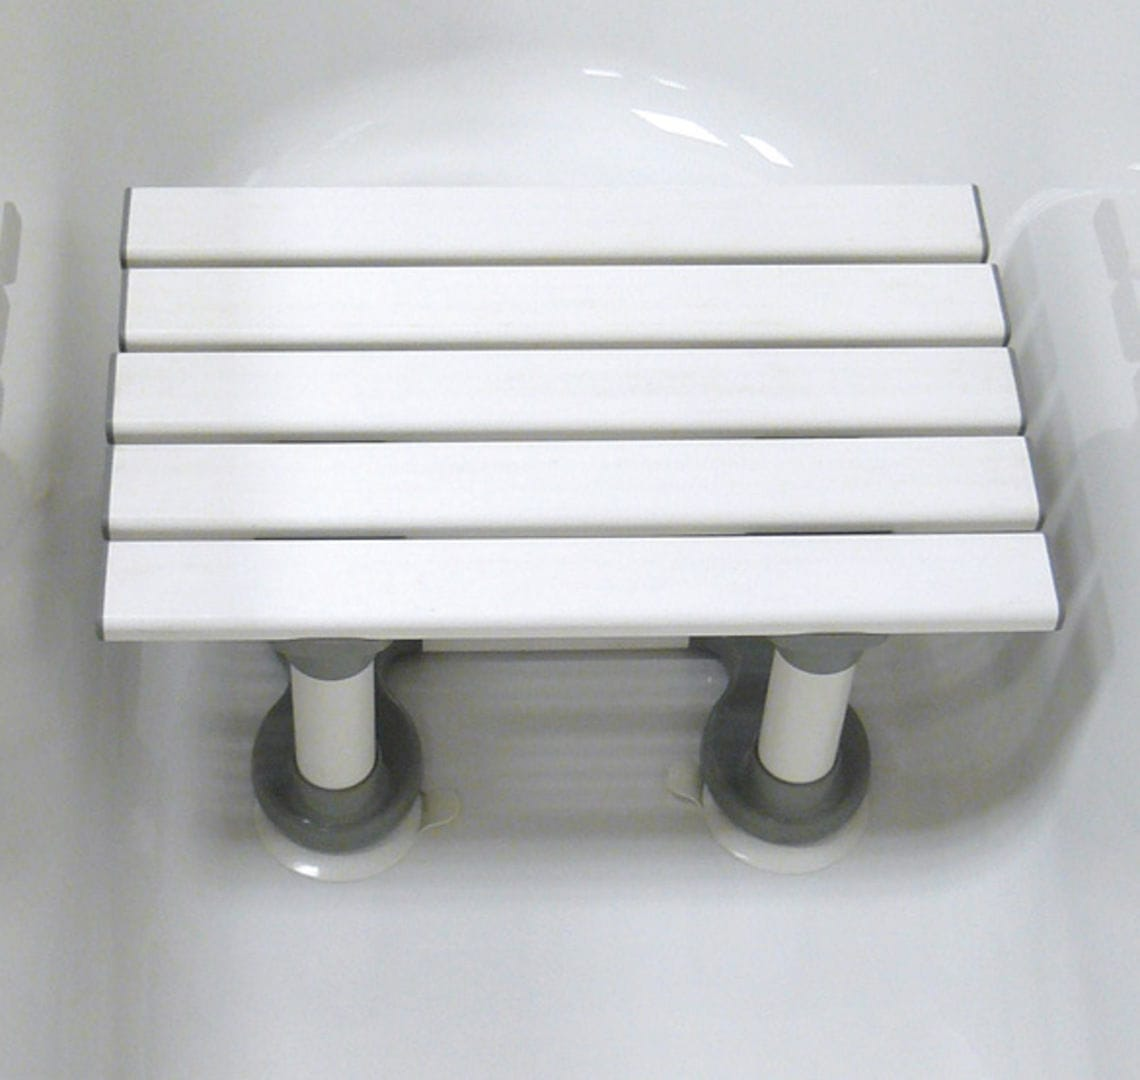 Bath seat / with suction cup - SBS56WH, SBS58WH, SBS512WH - Drive ...